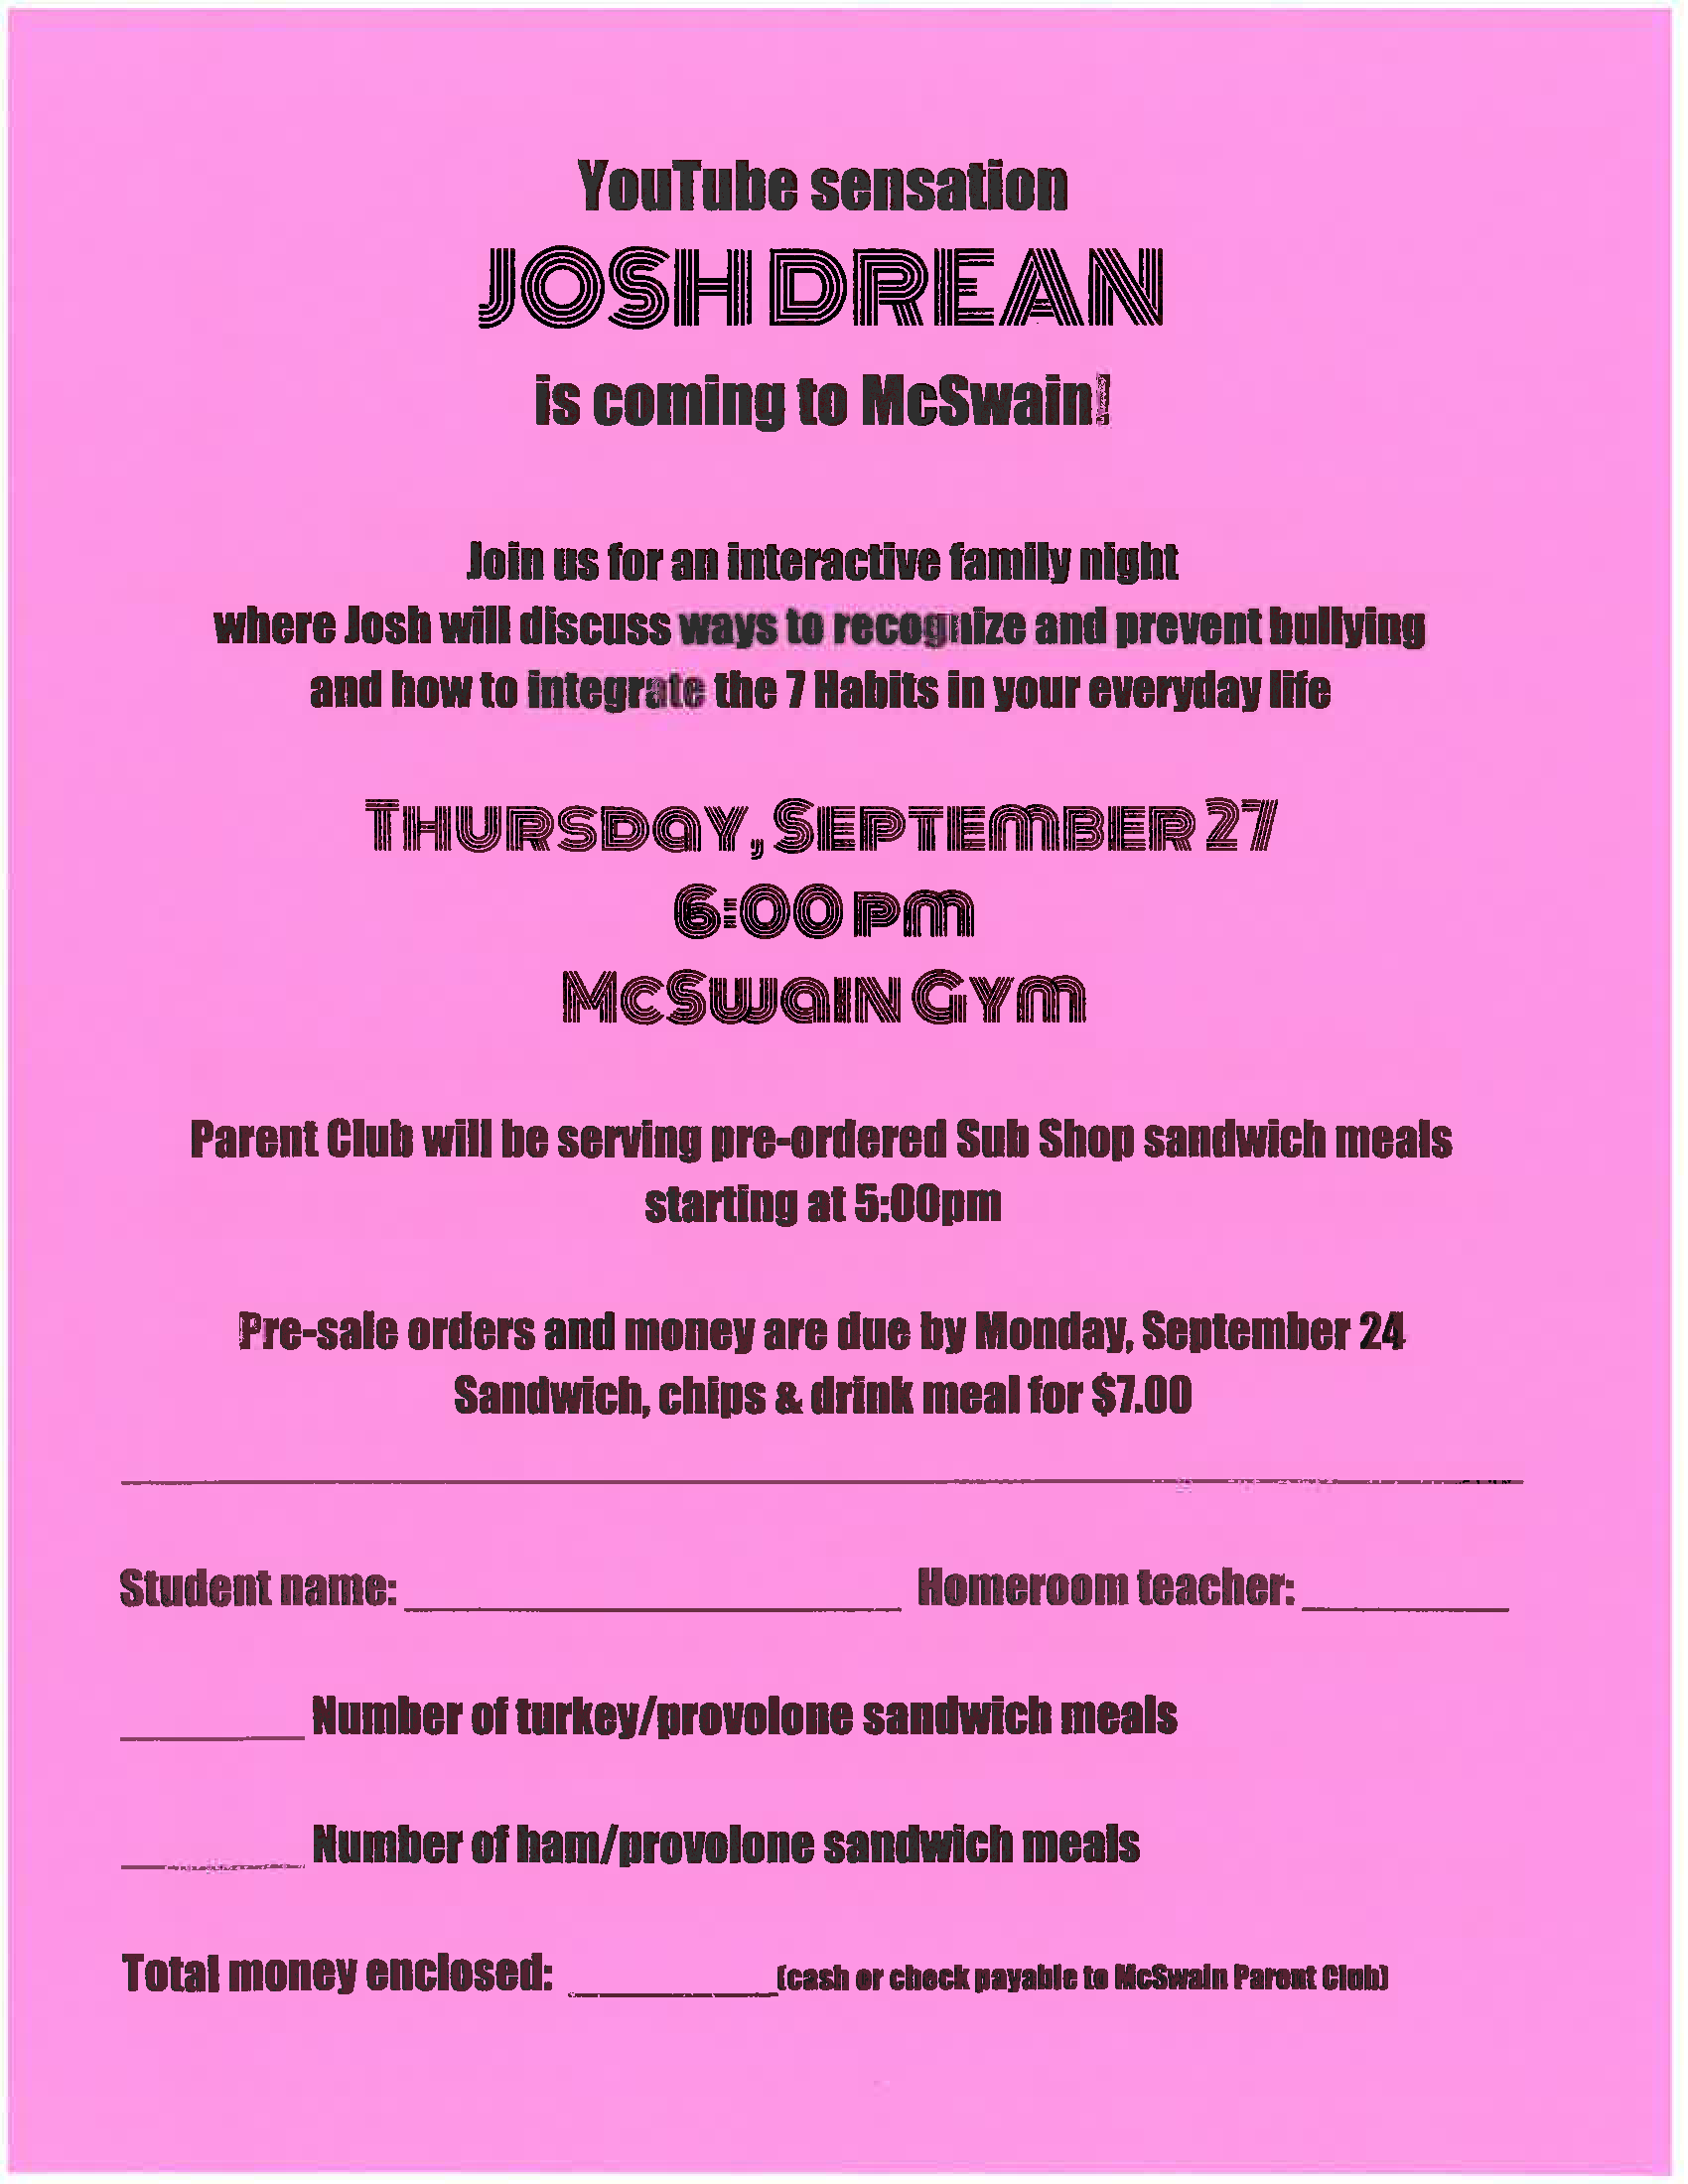 Josh Drean Family Night and meal order form